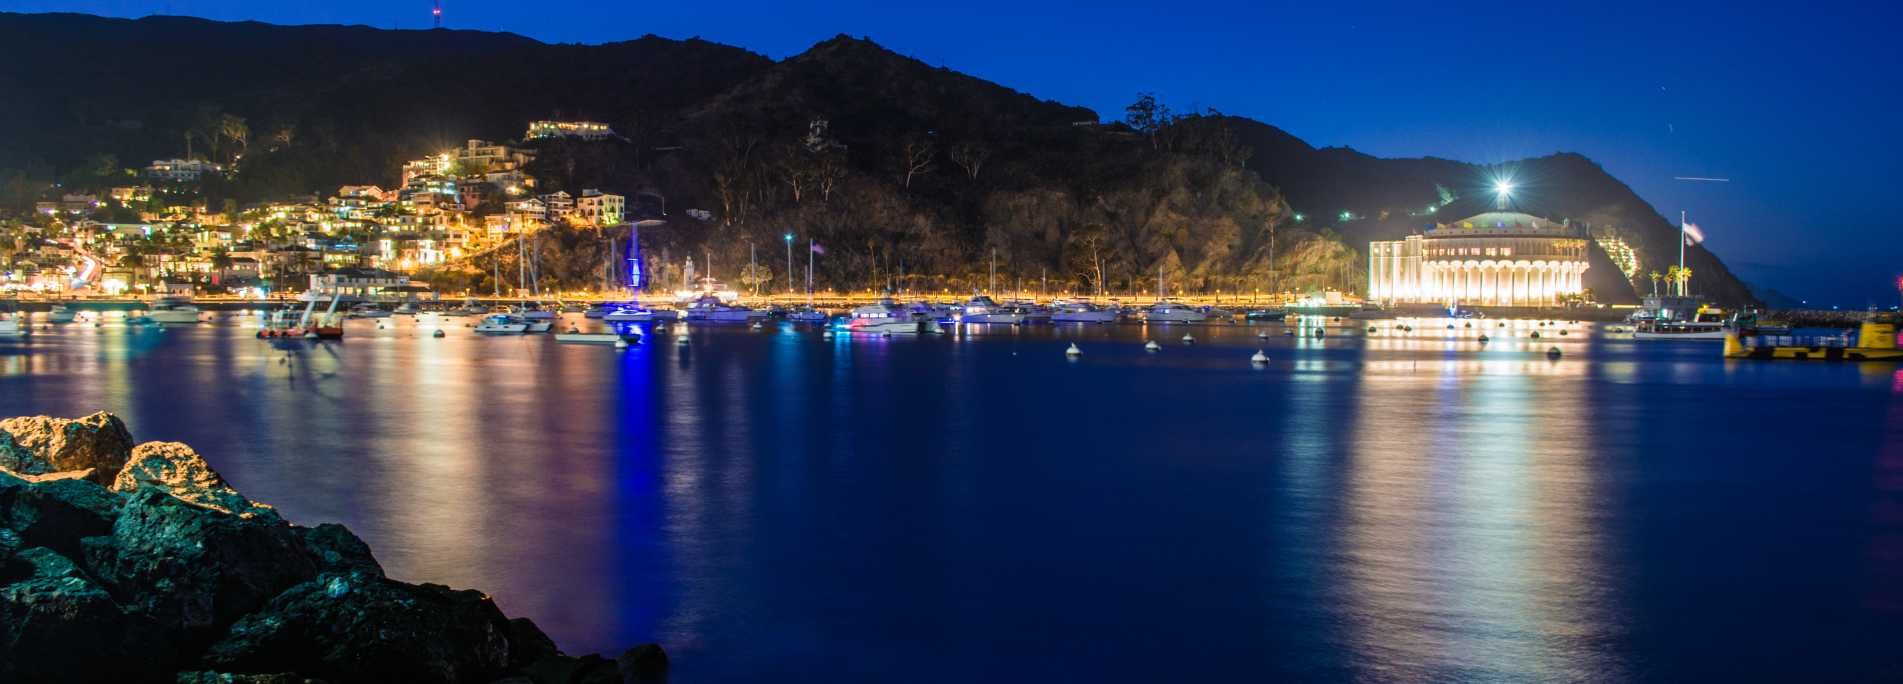 Nightlife on Catalina Island - Catalina Tourism